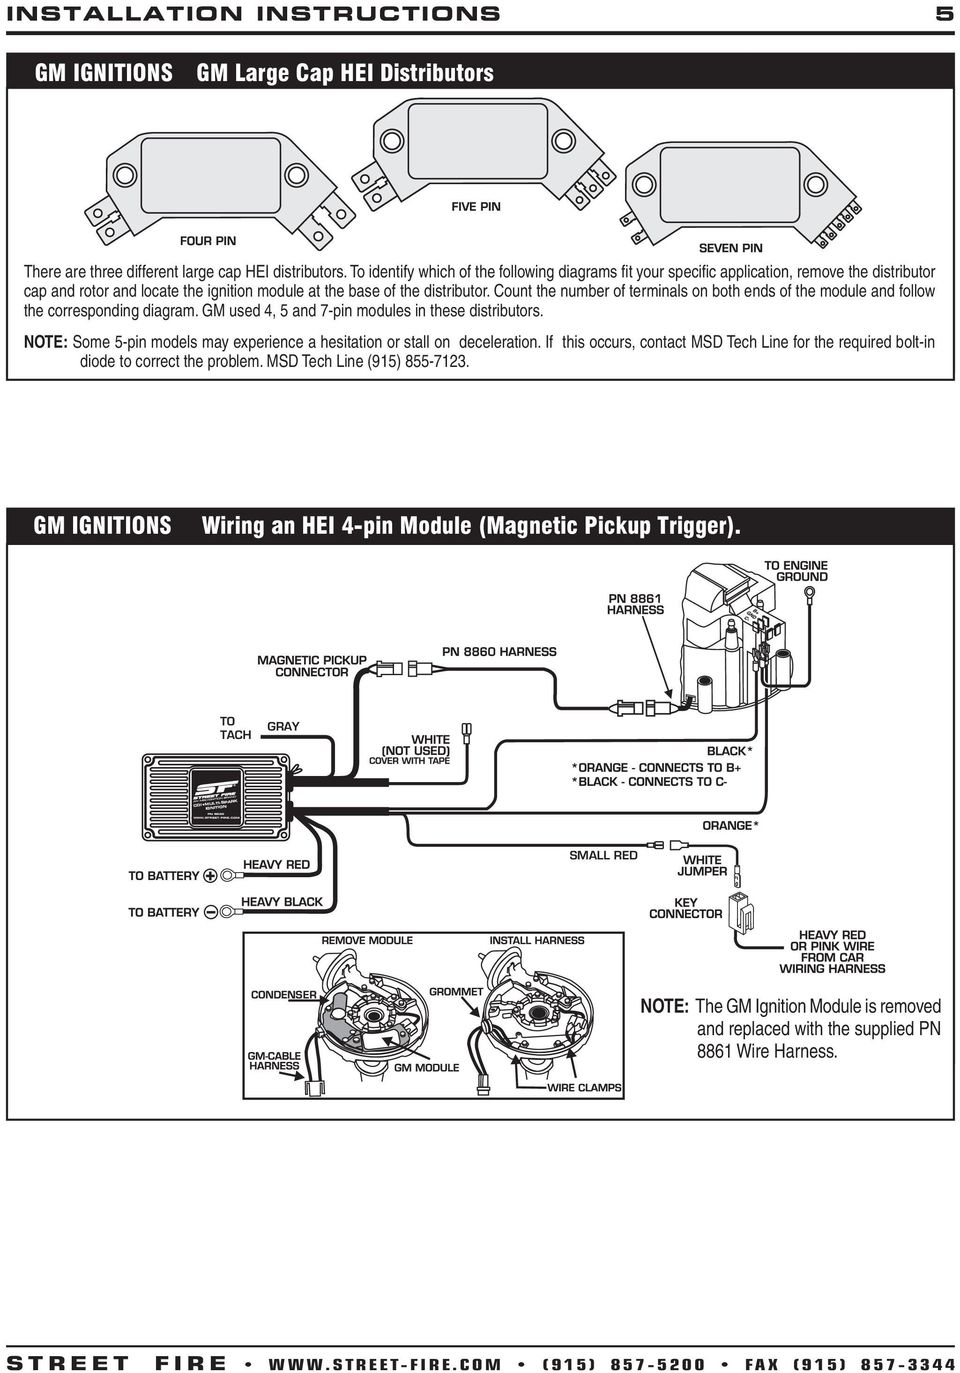 Street Fire Cdi Pn Ground Wire 1 100v 1a Diode Pdf Msd Ignition Pertronix Ignitor Ii Wiring Diagram For Distributor Count The Number Of Terminals On Both Ends Module And Follow Corresponding